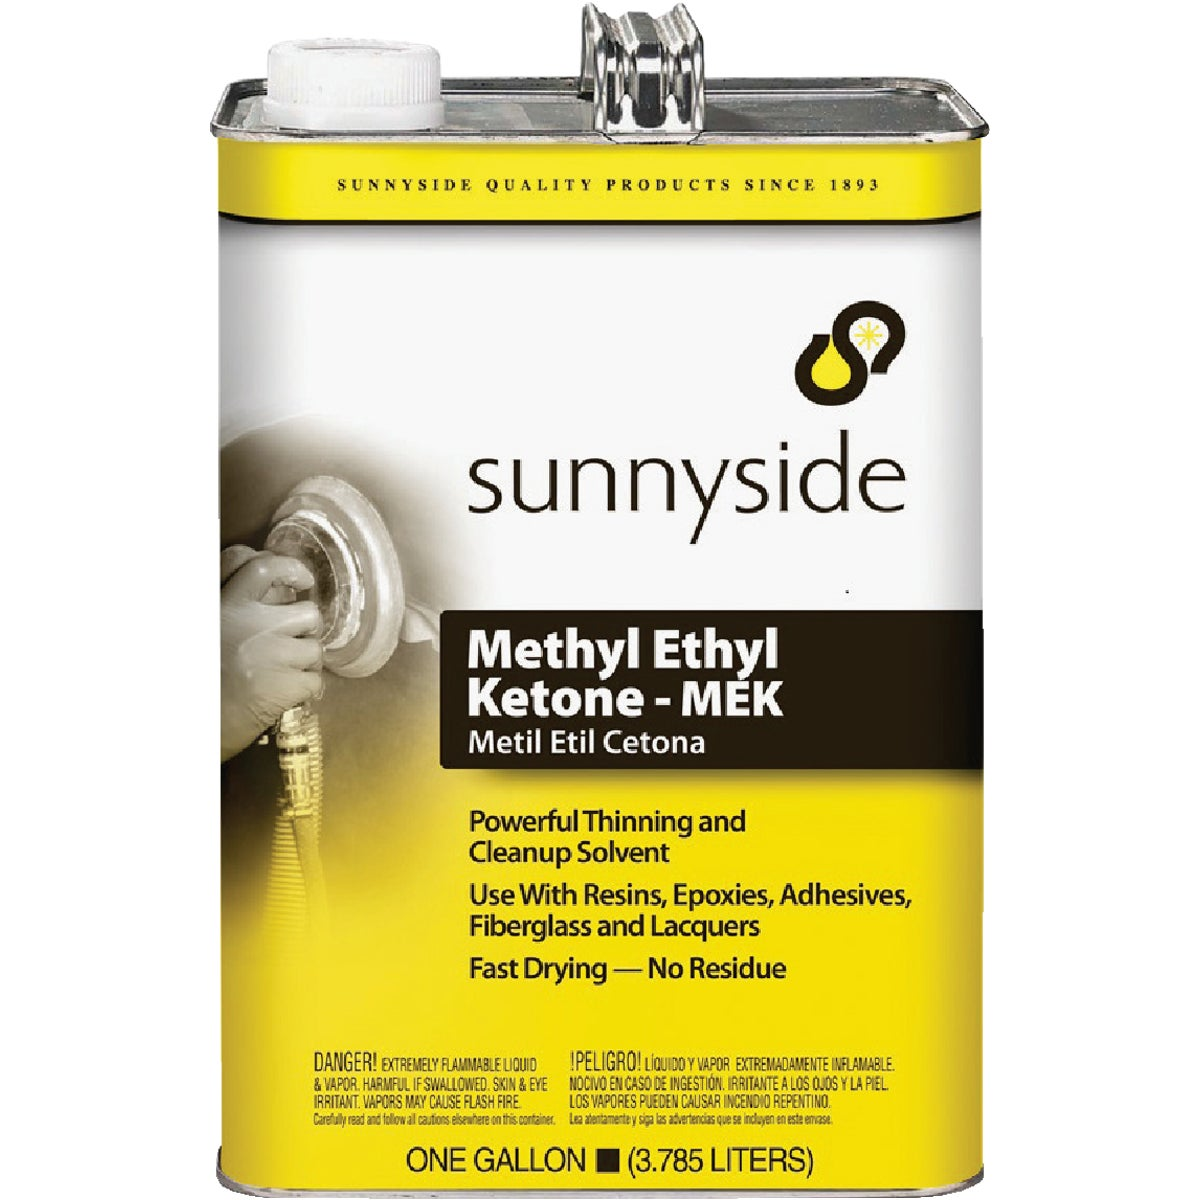 METHYL ETHYL KETONE - 847G1 by Sunnyside Corp